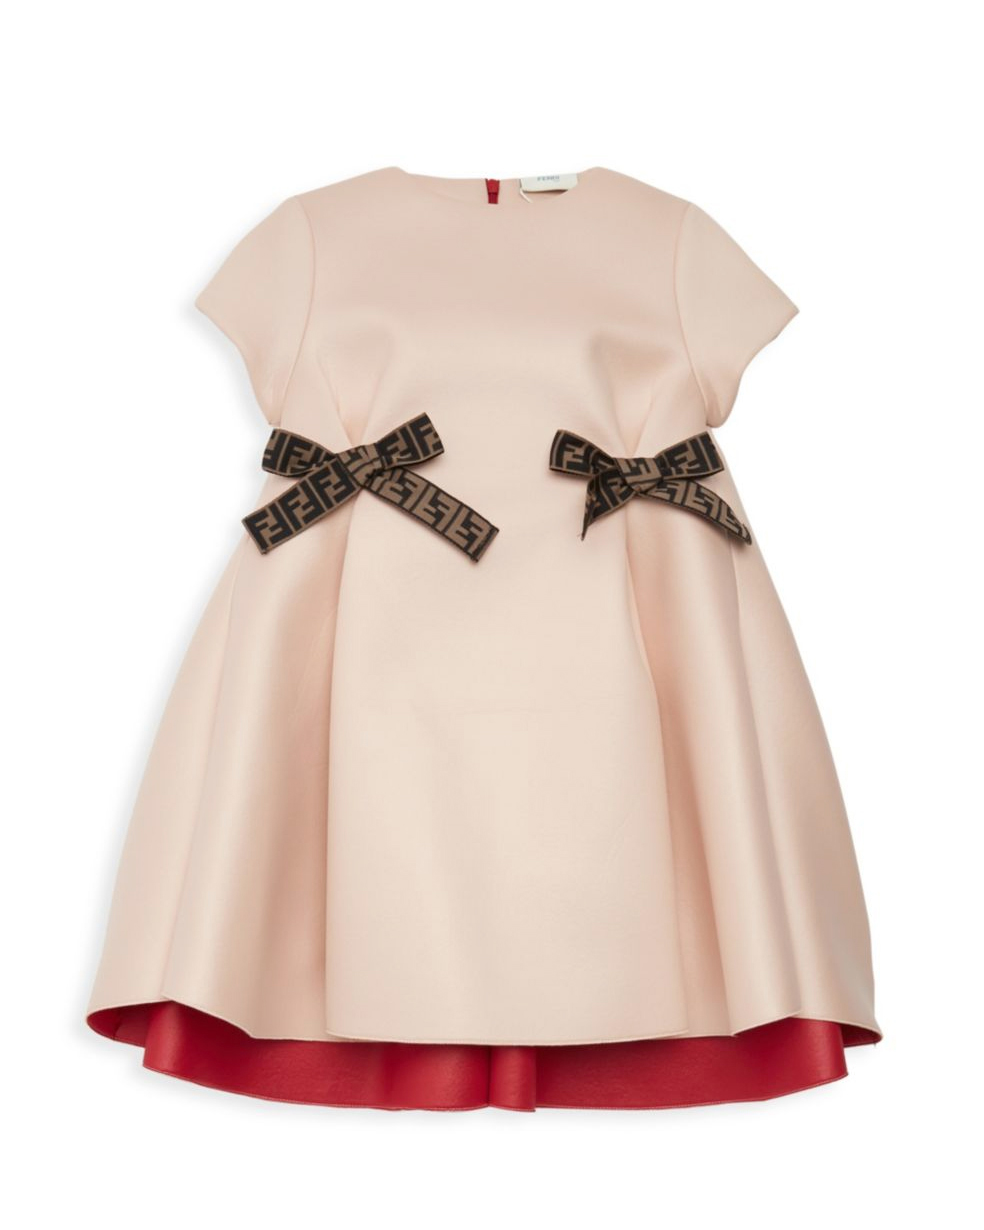 winter flower girl short-sleeved rose gold dress with two fendi logo bows at waist